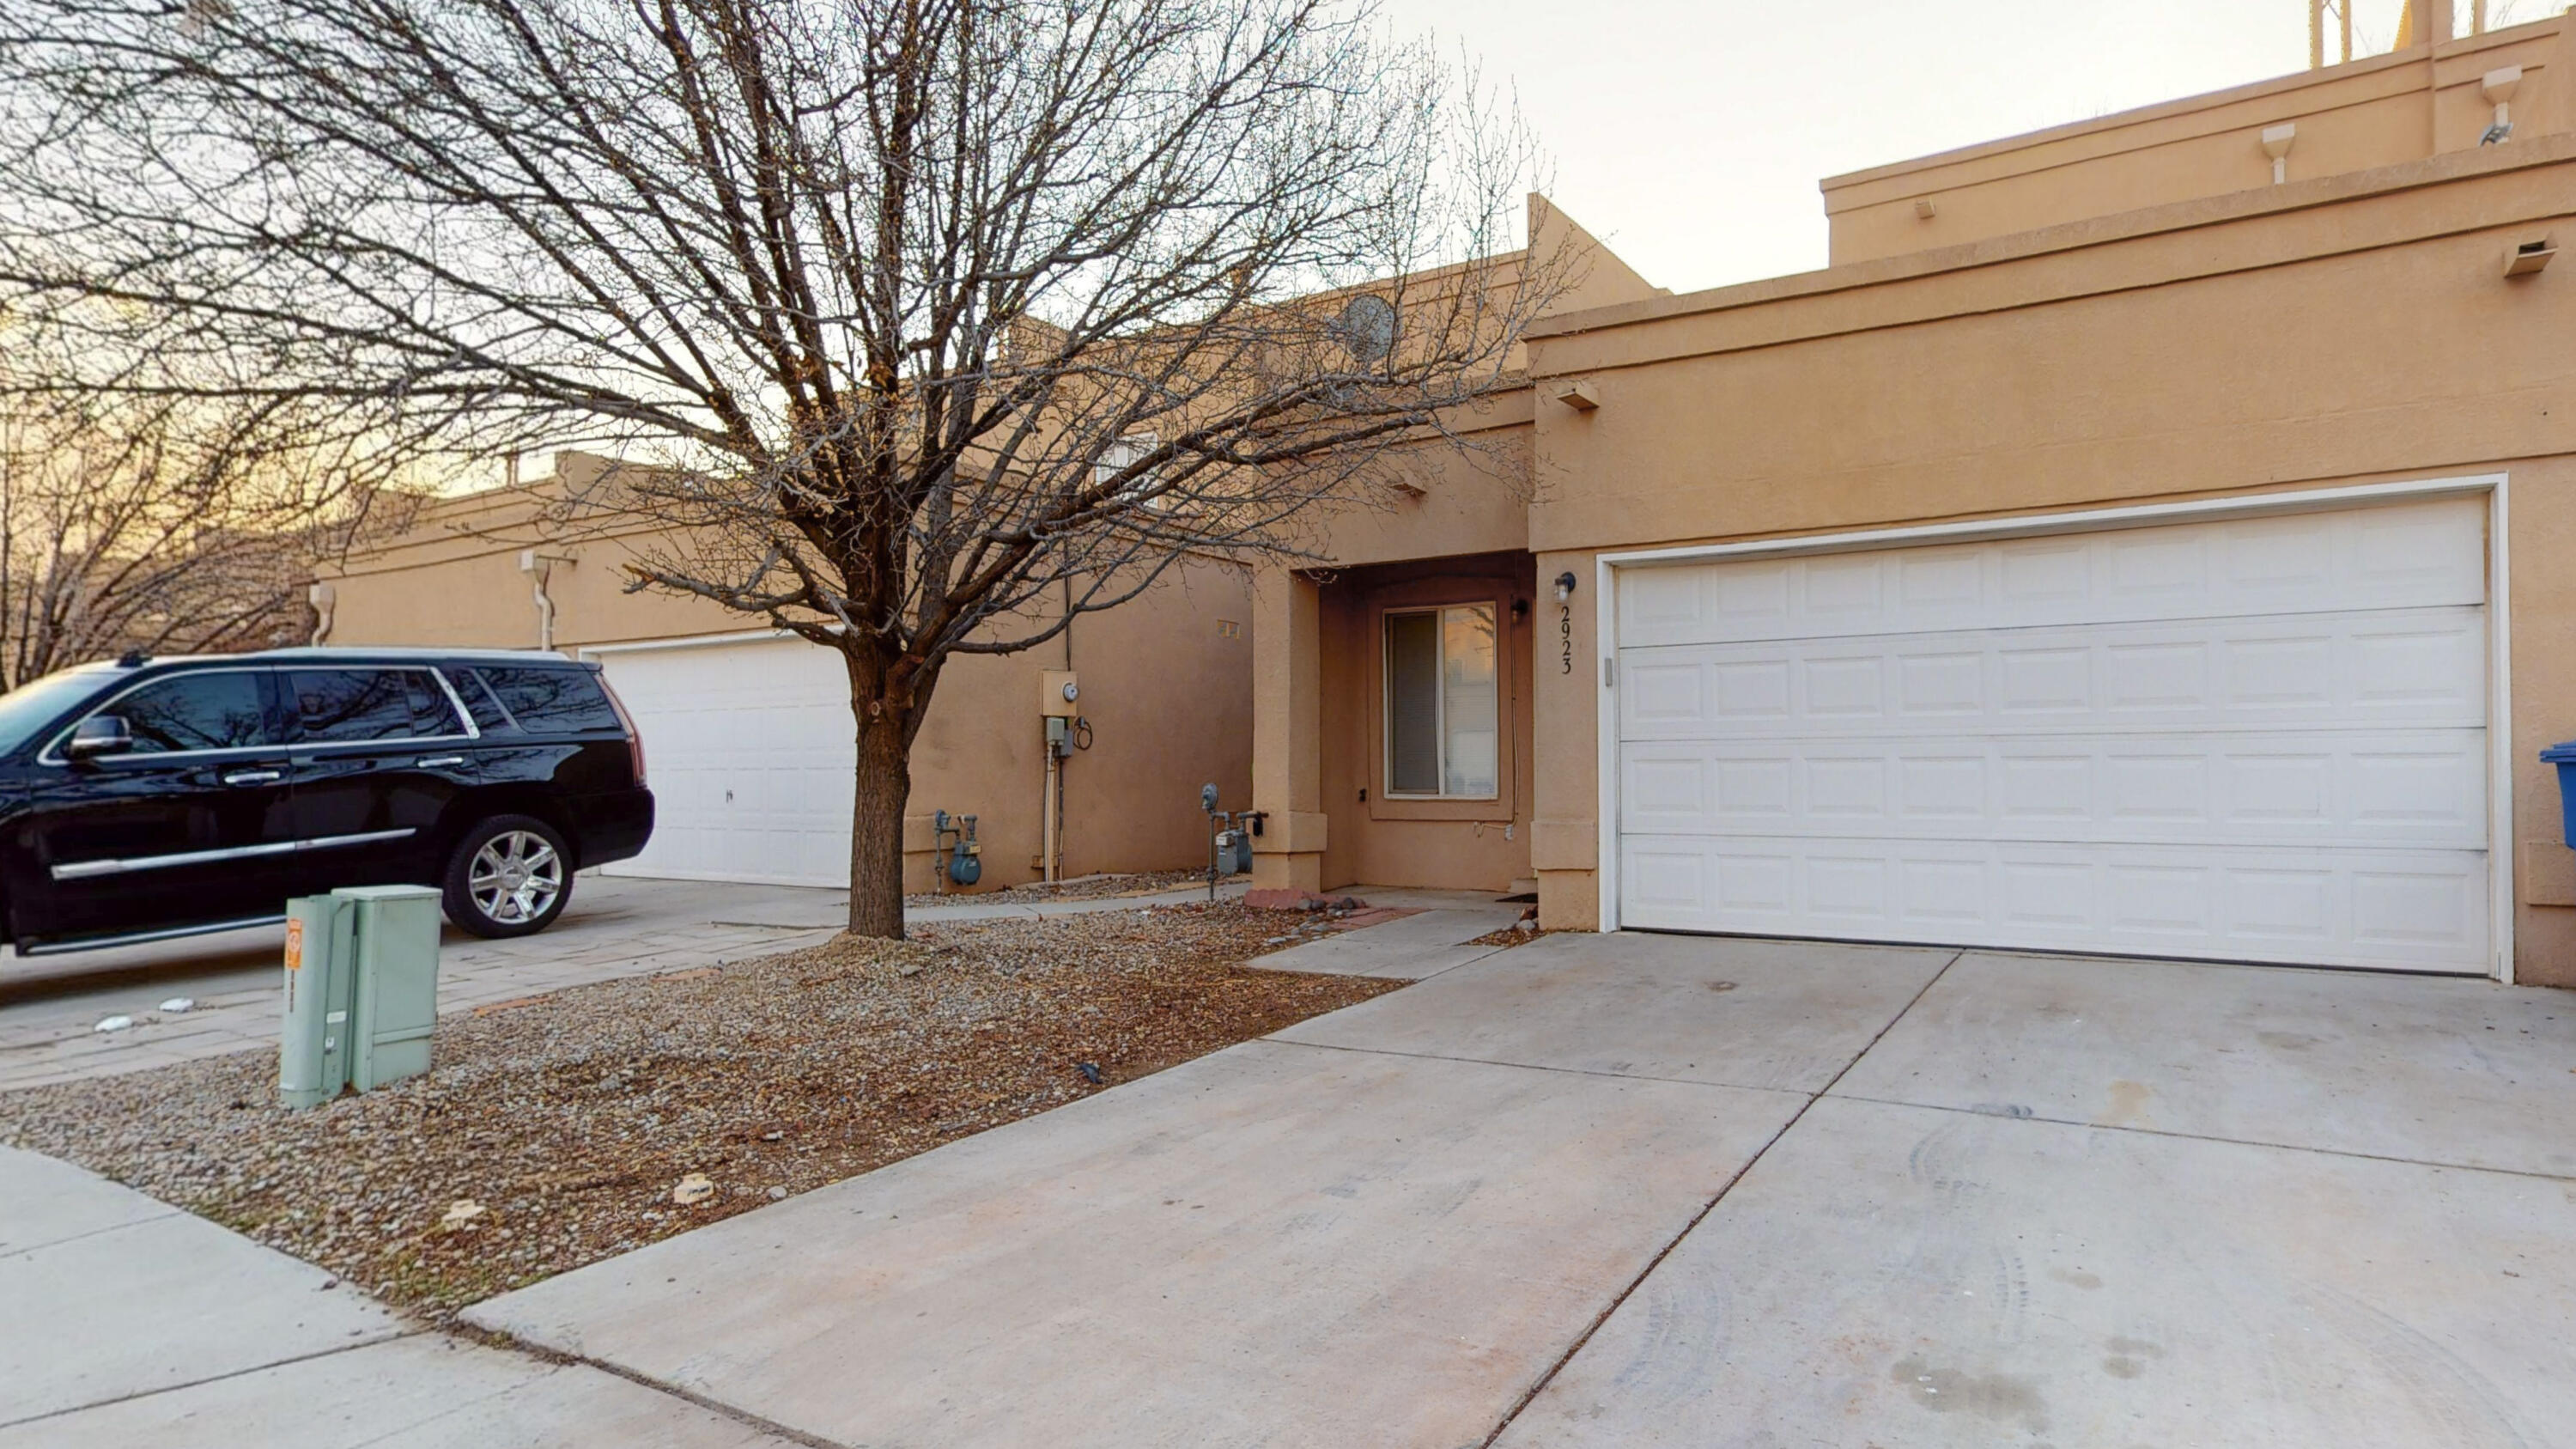 Move-in-ready townhome.  This home features 3 bedrooms and 2 full bathrooms.  The spacious owner's suite is located on the upper level with a full bath and large closet.  The other 2 bedrooms are on the lower level adjacent to the second full bath. An open kitchen with a breakfast nook with patio doors leading to the private backyard.  The backyard deck has been recently refinished.  Other recent updates and upgrades including new carpet, freshly painted, roof replaced in 2021, cooler replaced in 2020, heater and water heater replaced in 2019. Located near I-40 and Coors and close to shopping and restaurants.